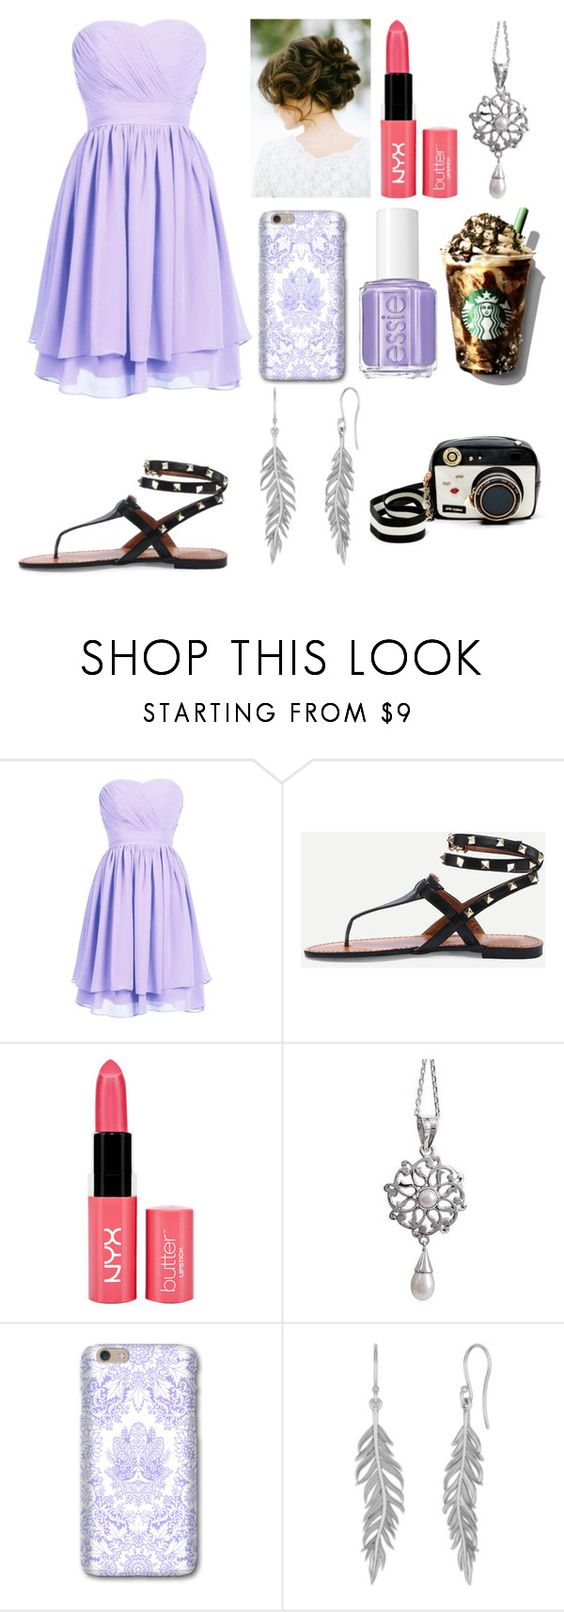 """Untitled #612"" by lucy-smith-2 ❤ liked on Polyvore featuring NYX, NOVICA, Essie and Betsey Johnson"